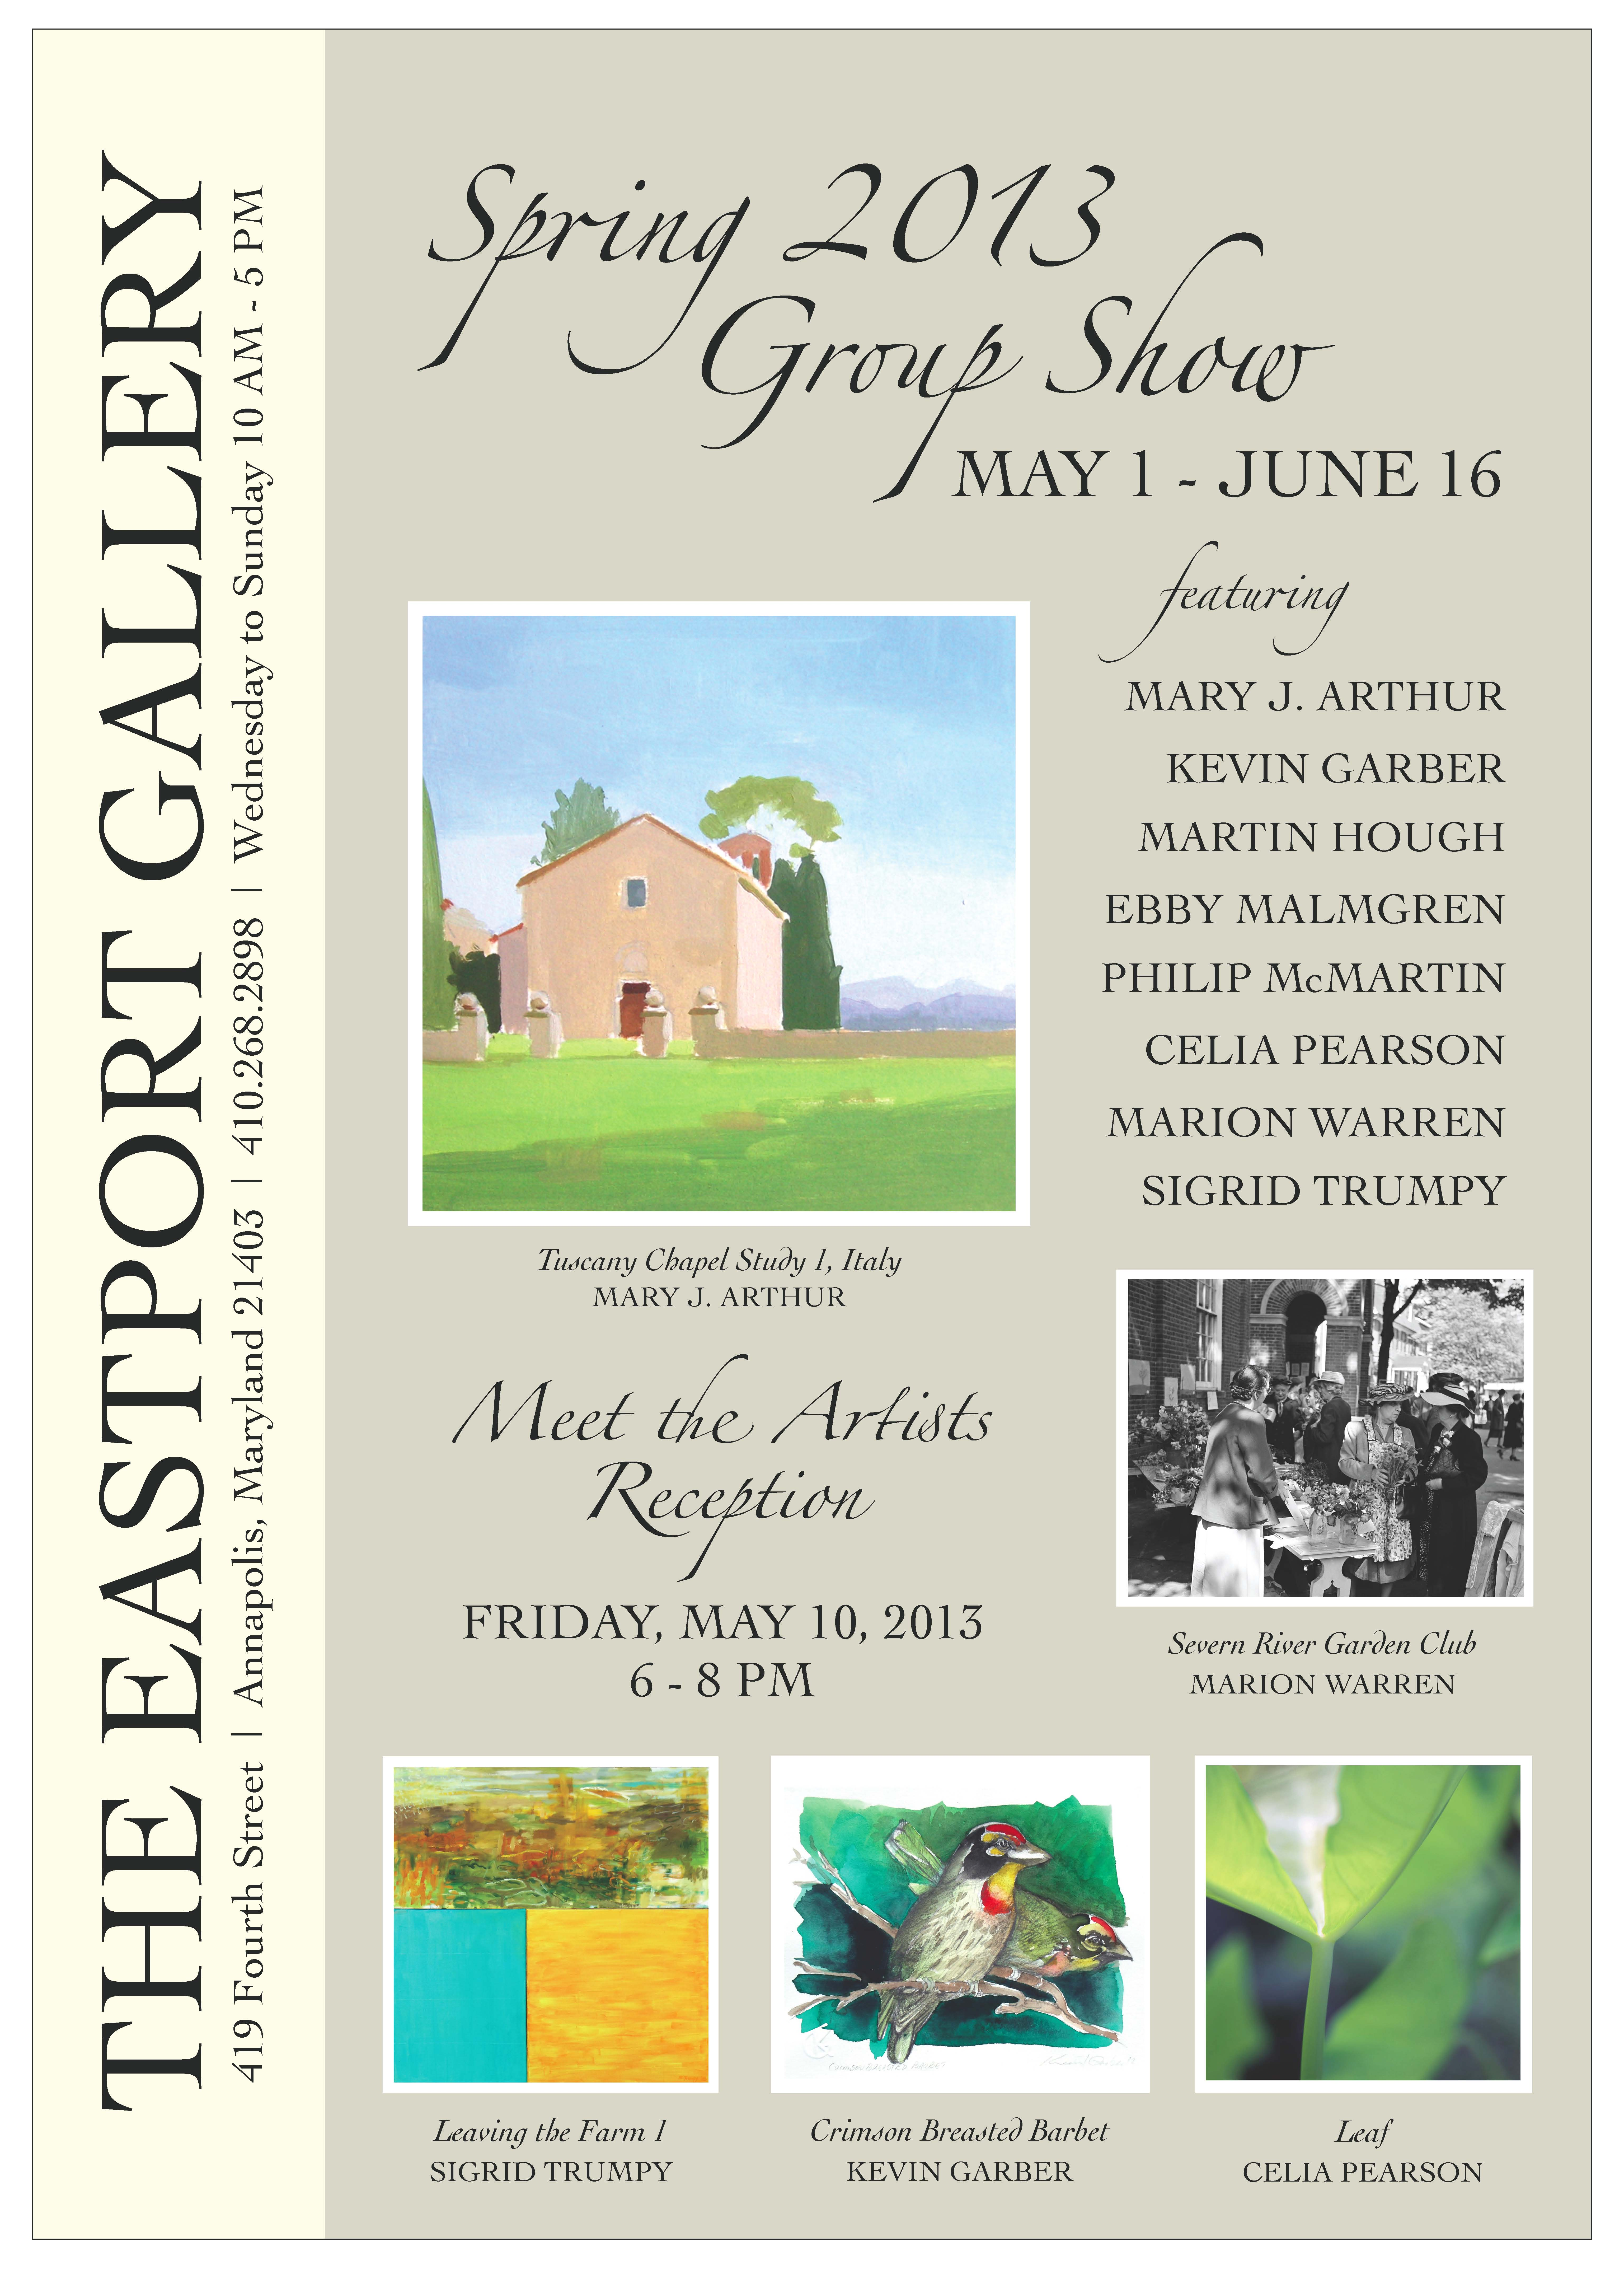 Spring 2013 Group Show reception at The Eastport Gallery